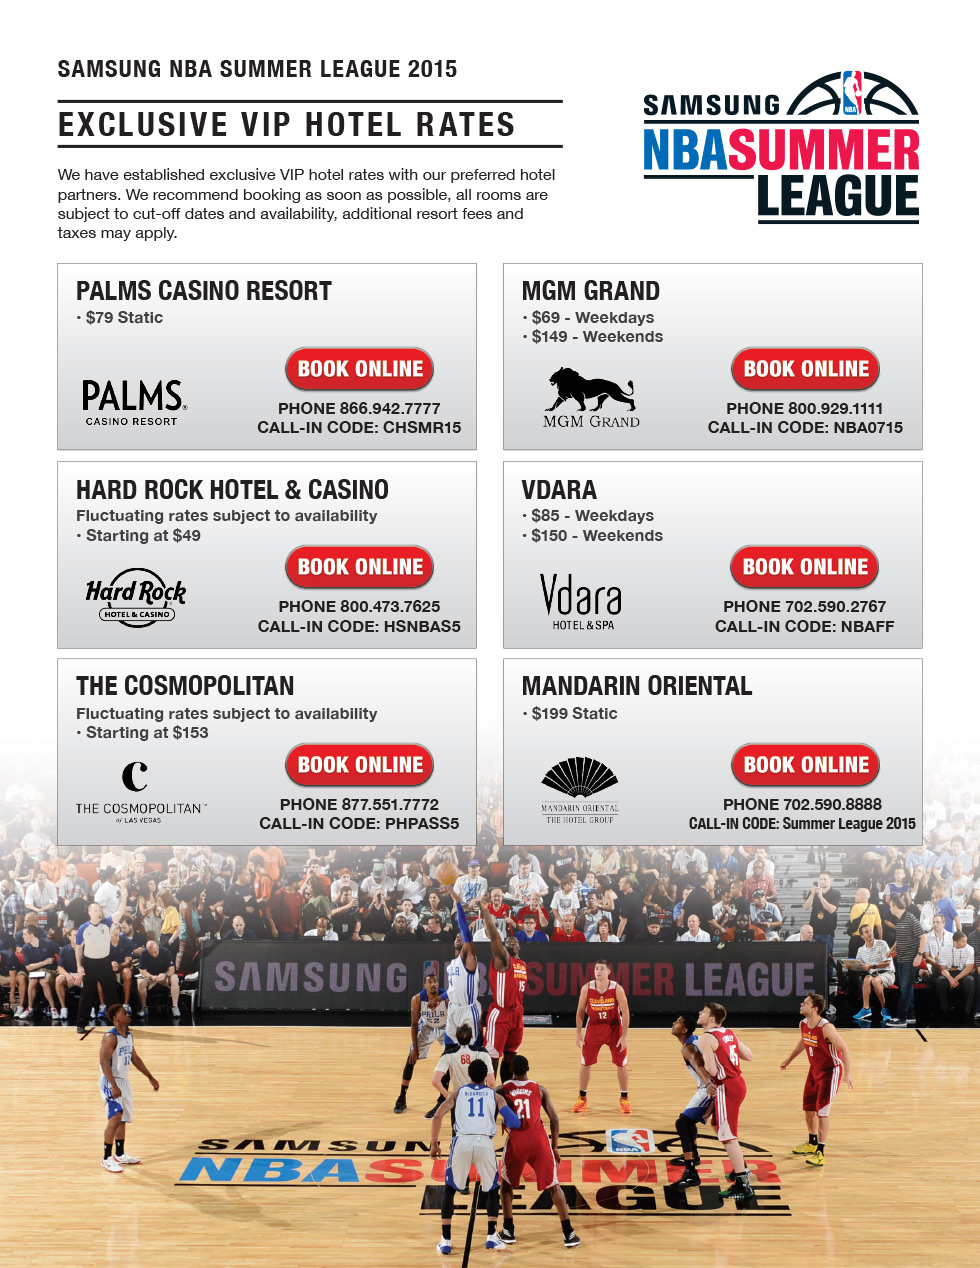 2015 Samsung NBA Summer League VIP Hotel Rates